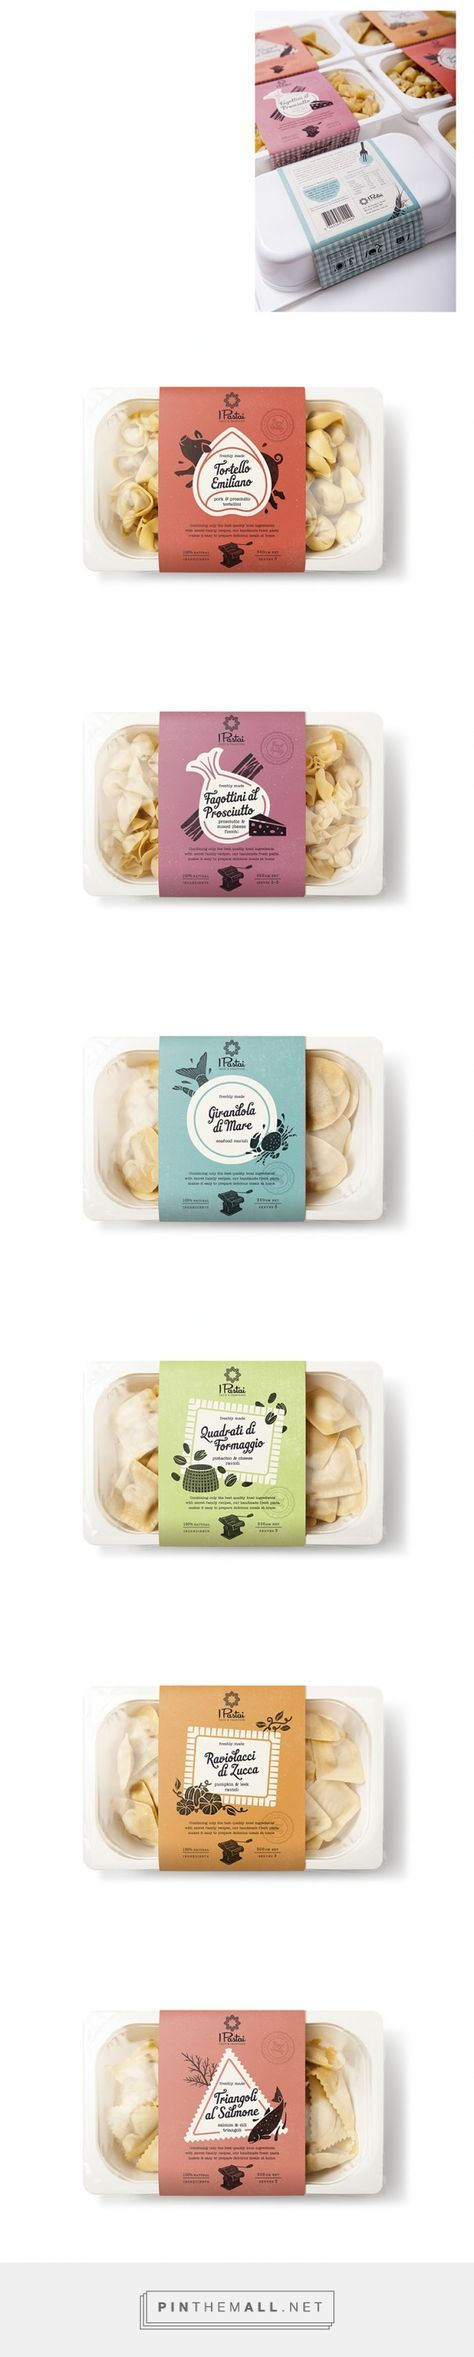 Pasta packaging design, food packaging | Dessein - created via http://pinthemall.net